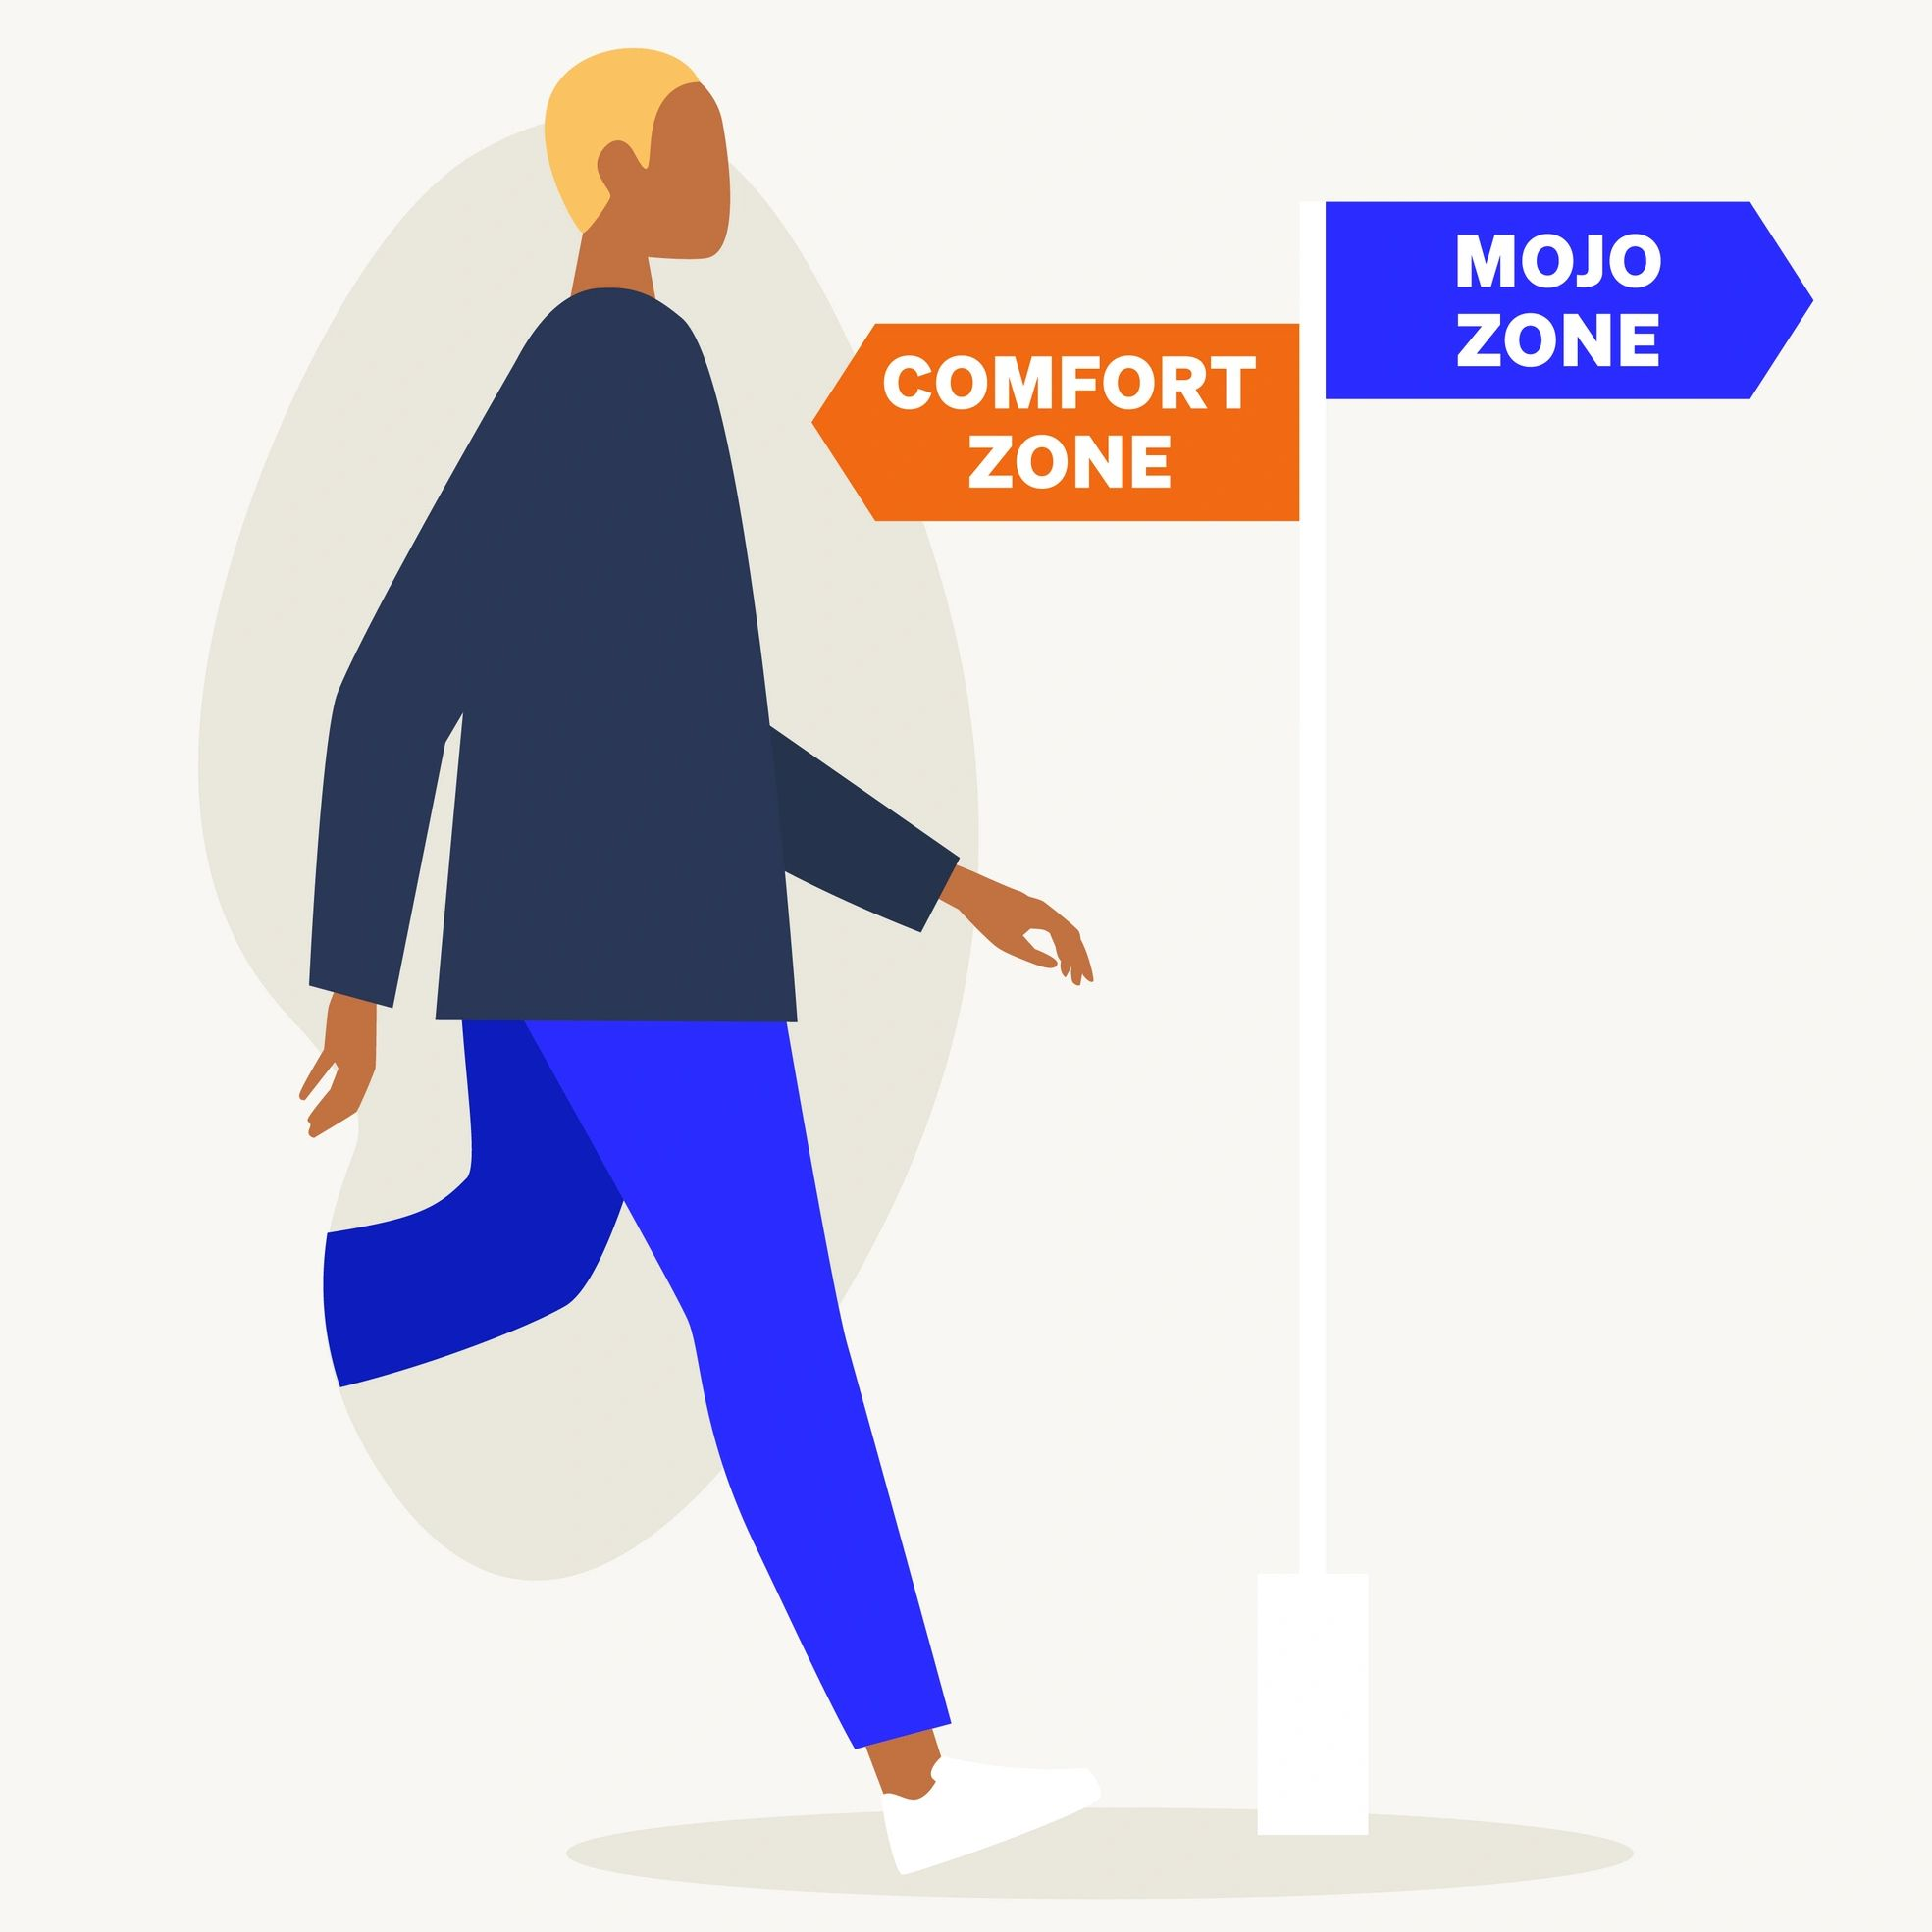 Man in blue trousers stepping from his comfort zone into the Mojo personal growth zone